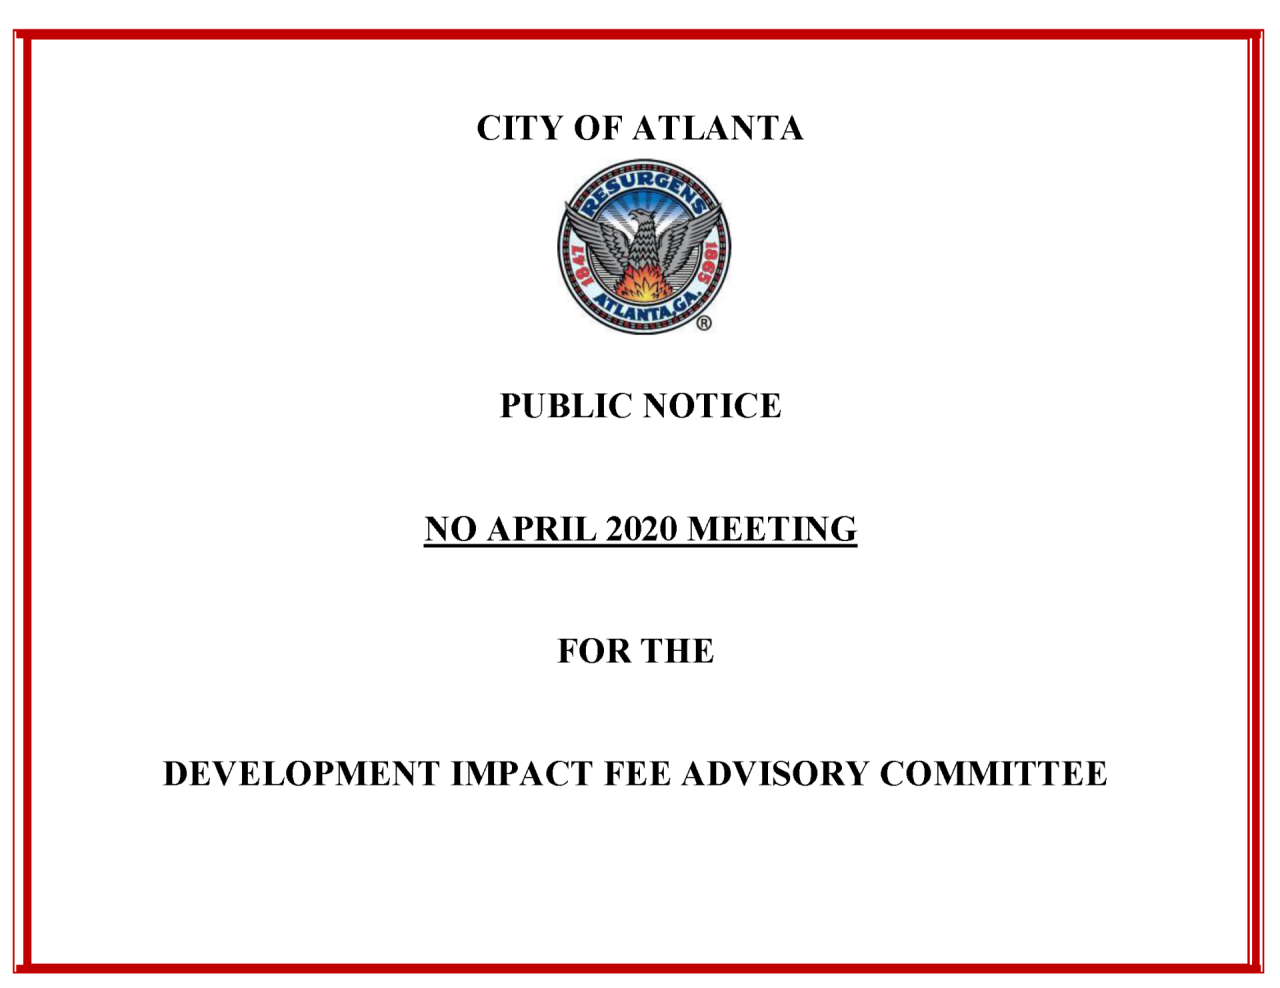 DIF AC - Public Notice - April 2020 Meeting - Cancelled